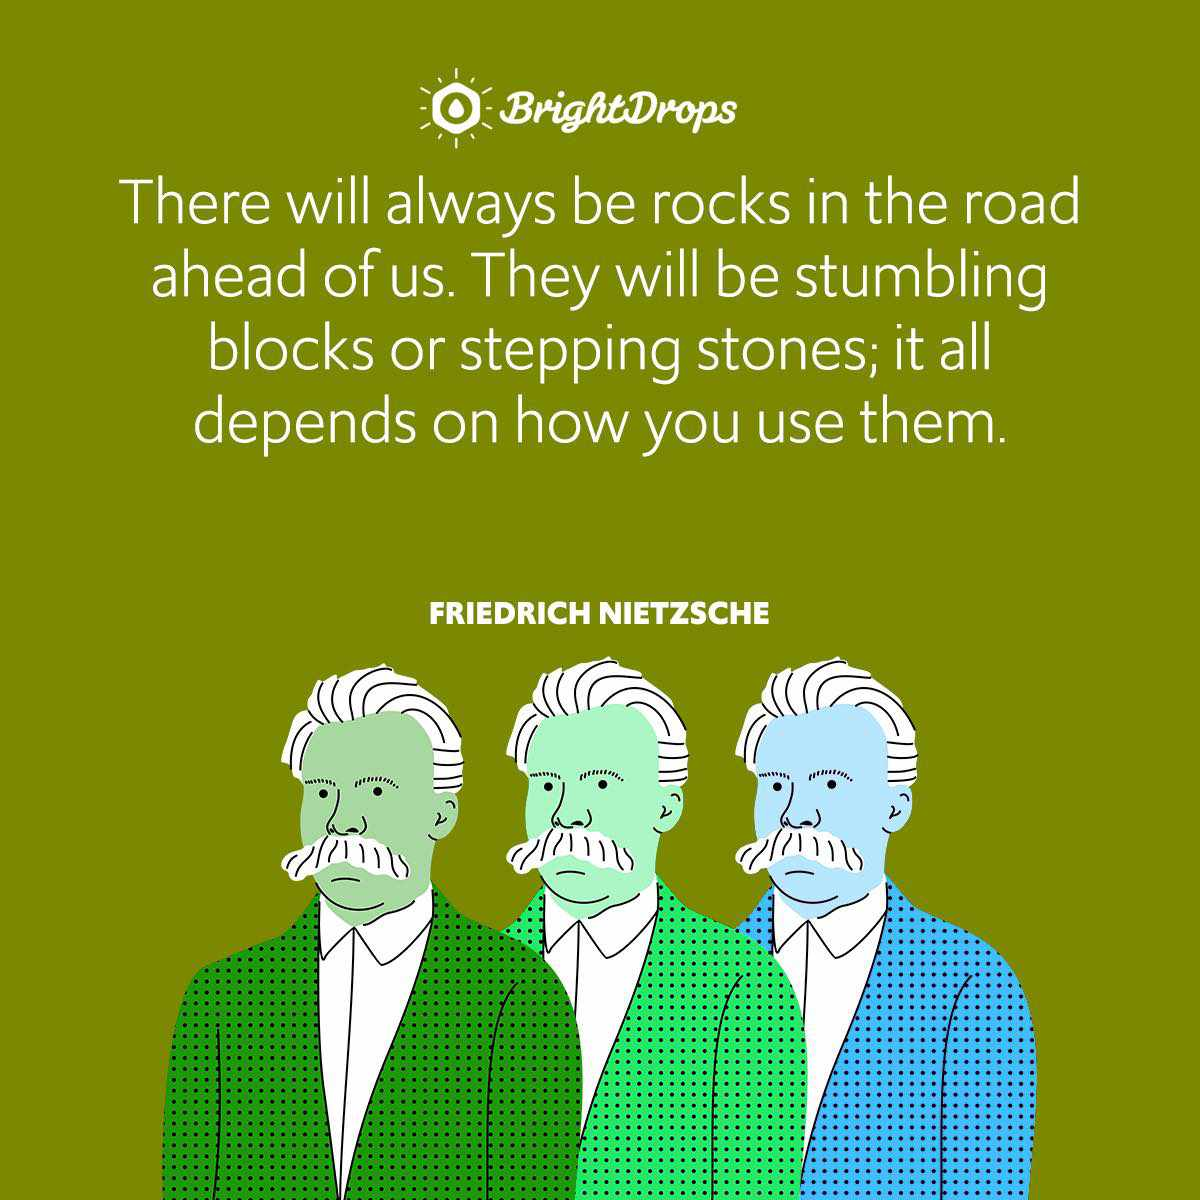 There will always be rocks in the road ahead of us. They will be stumbling blocks or stepping stones; it all depends on how you use them.